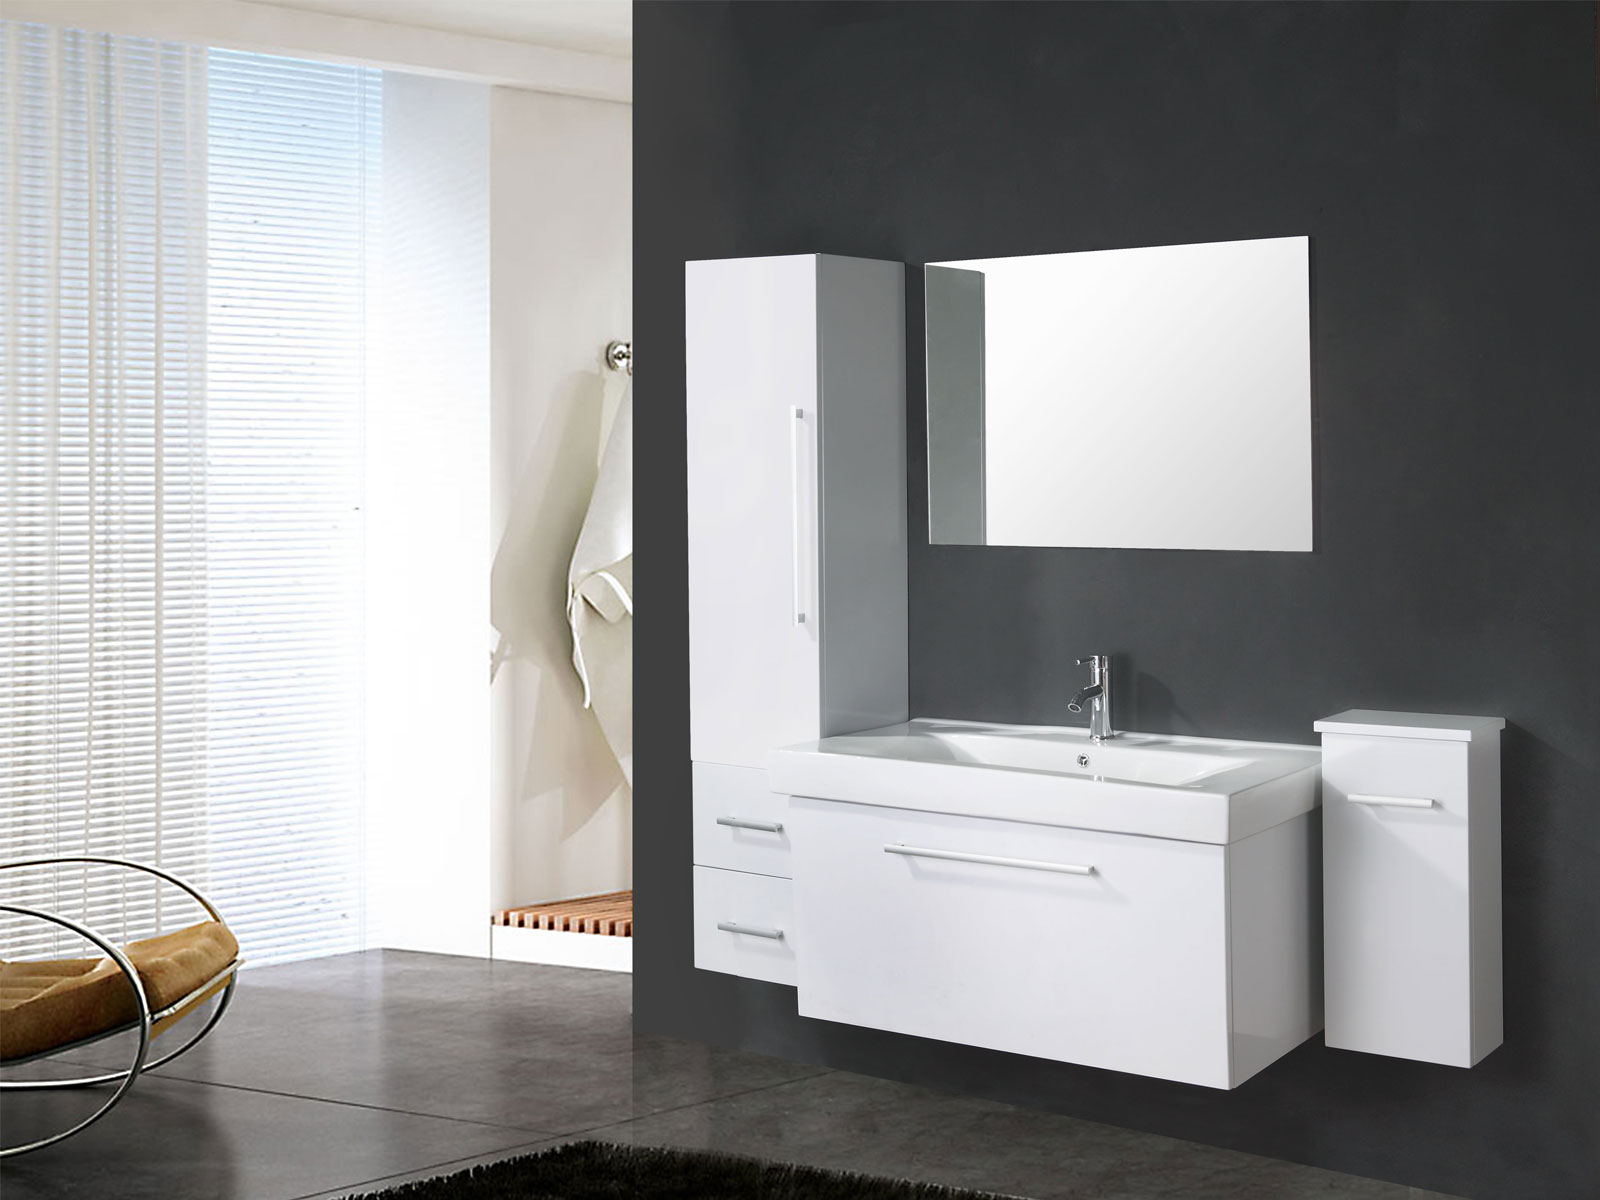 meuble salle de bain vasque lavabo 2 unit de colonne mod white london 100 cm ebay. Black Bedroom Furniture Sets. Home Design Ideas